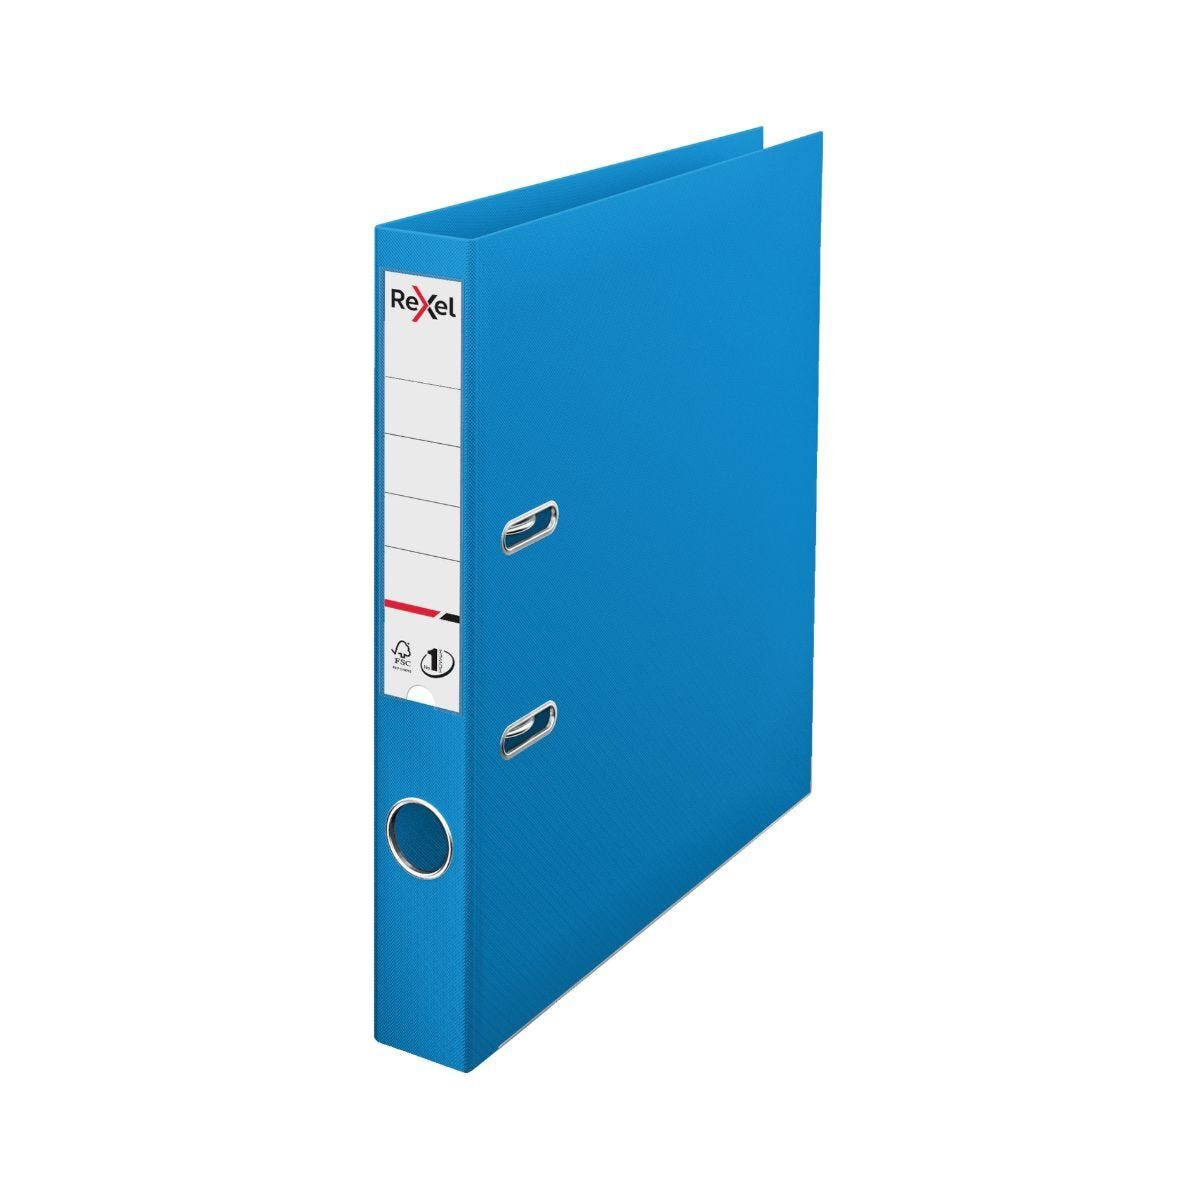 Rexel Choices Lever Arch File A4 PP 50mm Pack of 10 White